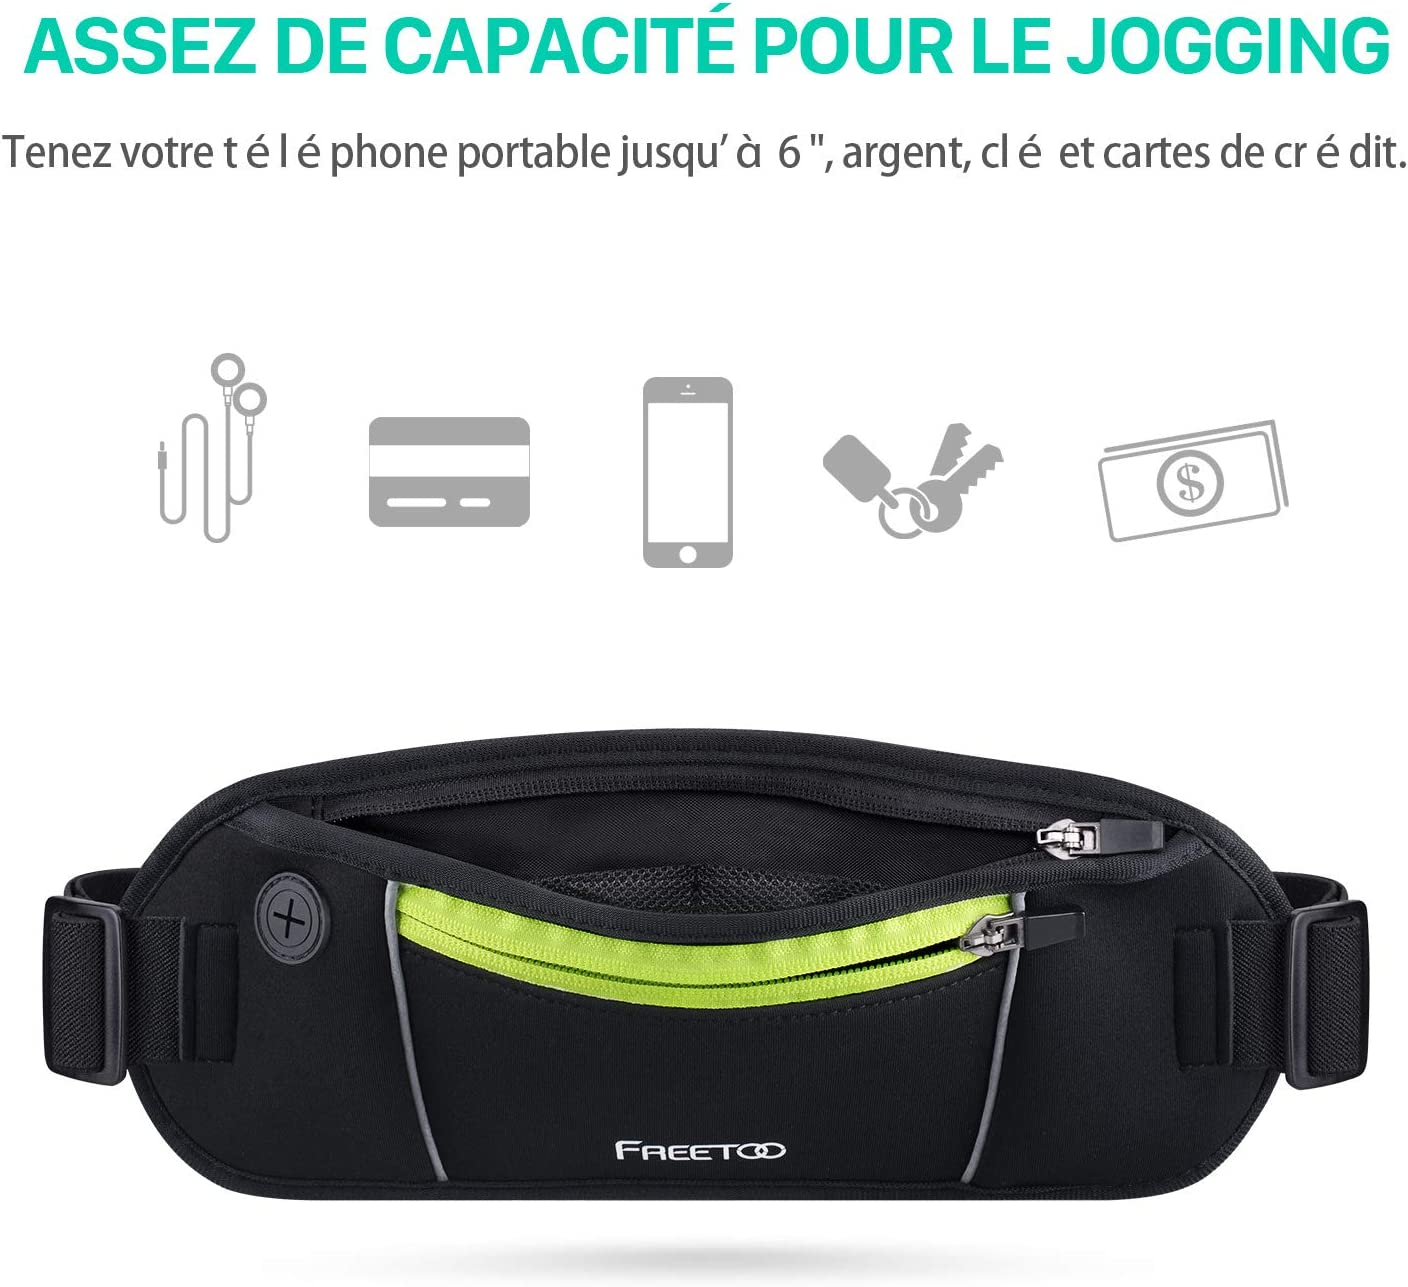 Voyage- Noir et Fluo Hiking Dog Walking Black Parsion Running Belt//Sac Ceinture Banane Etanche- Portable iPhone 7,GalaxyS5 S6 Note 4//5- Escalade Randonn/ée Jogging